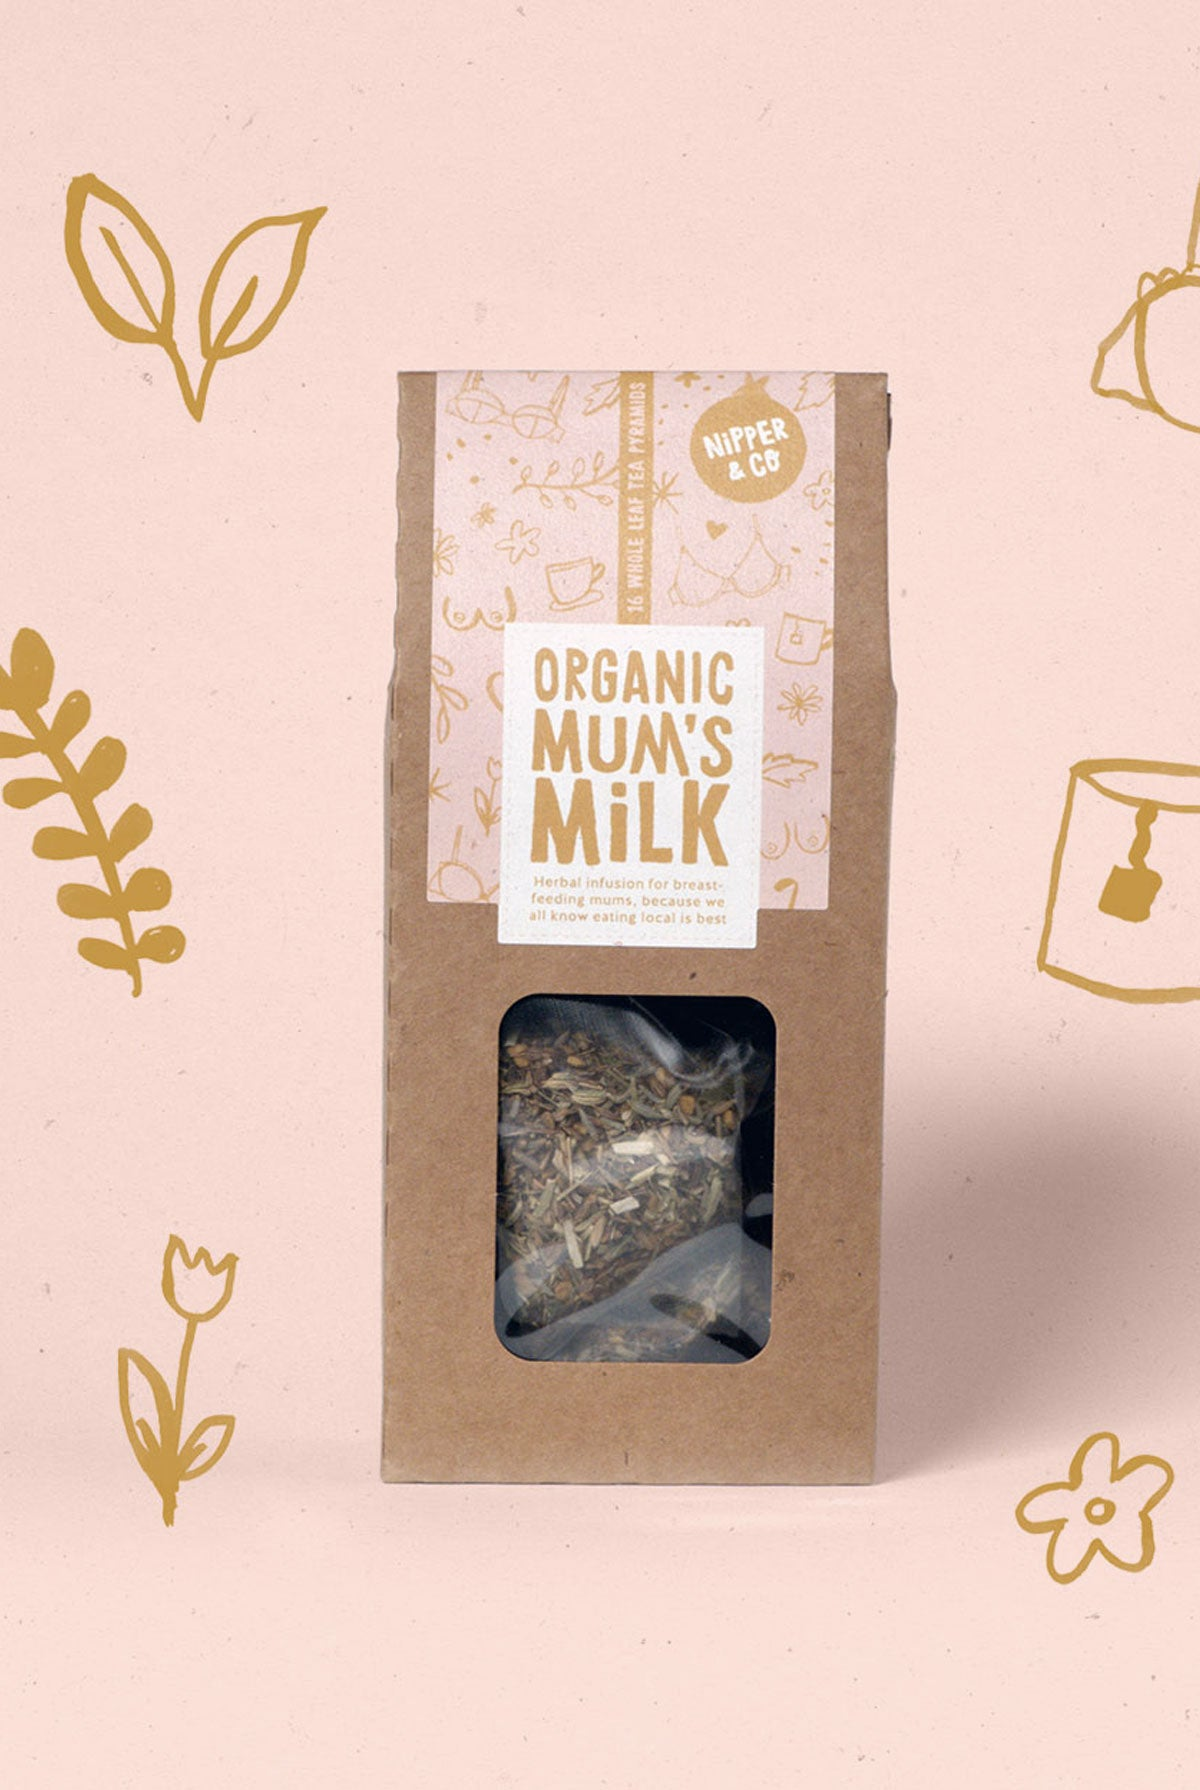 Nipper & Co Organic Mum's Milk - Lactation Tea for Breastfeeding Mothers - One Size